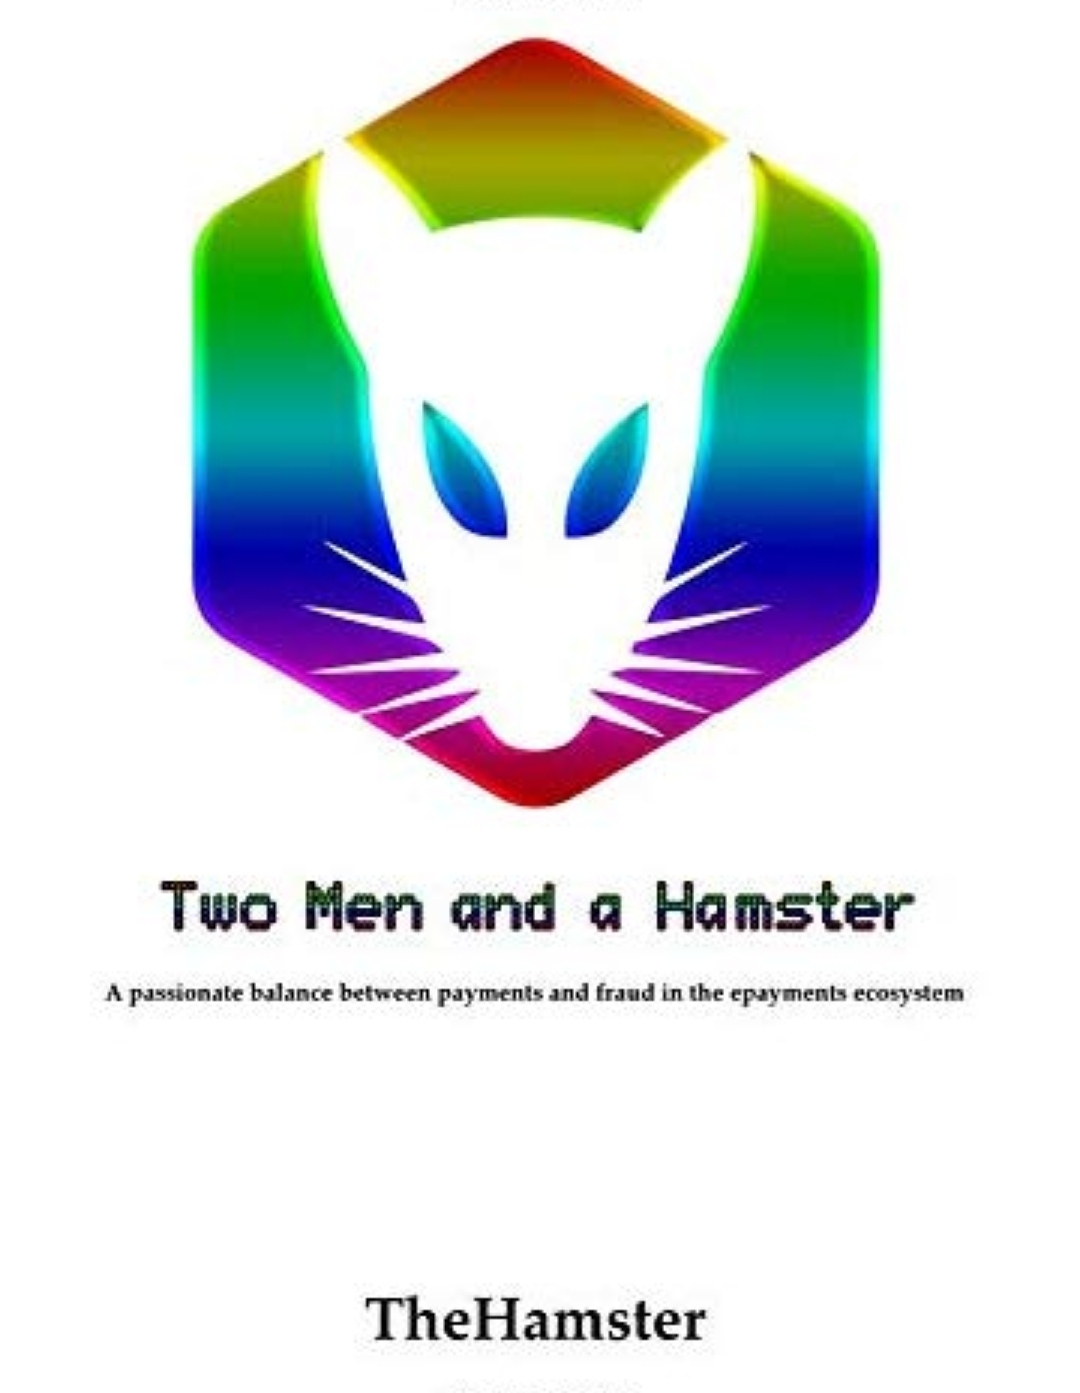 Two Men and a Hamster